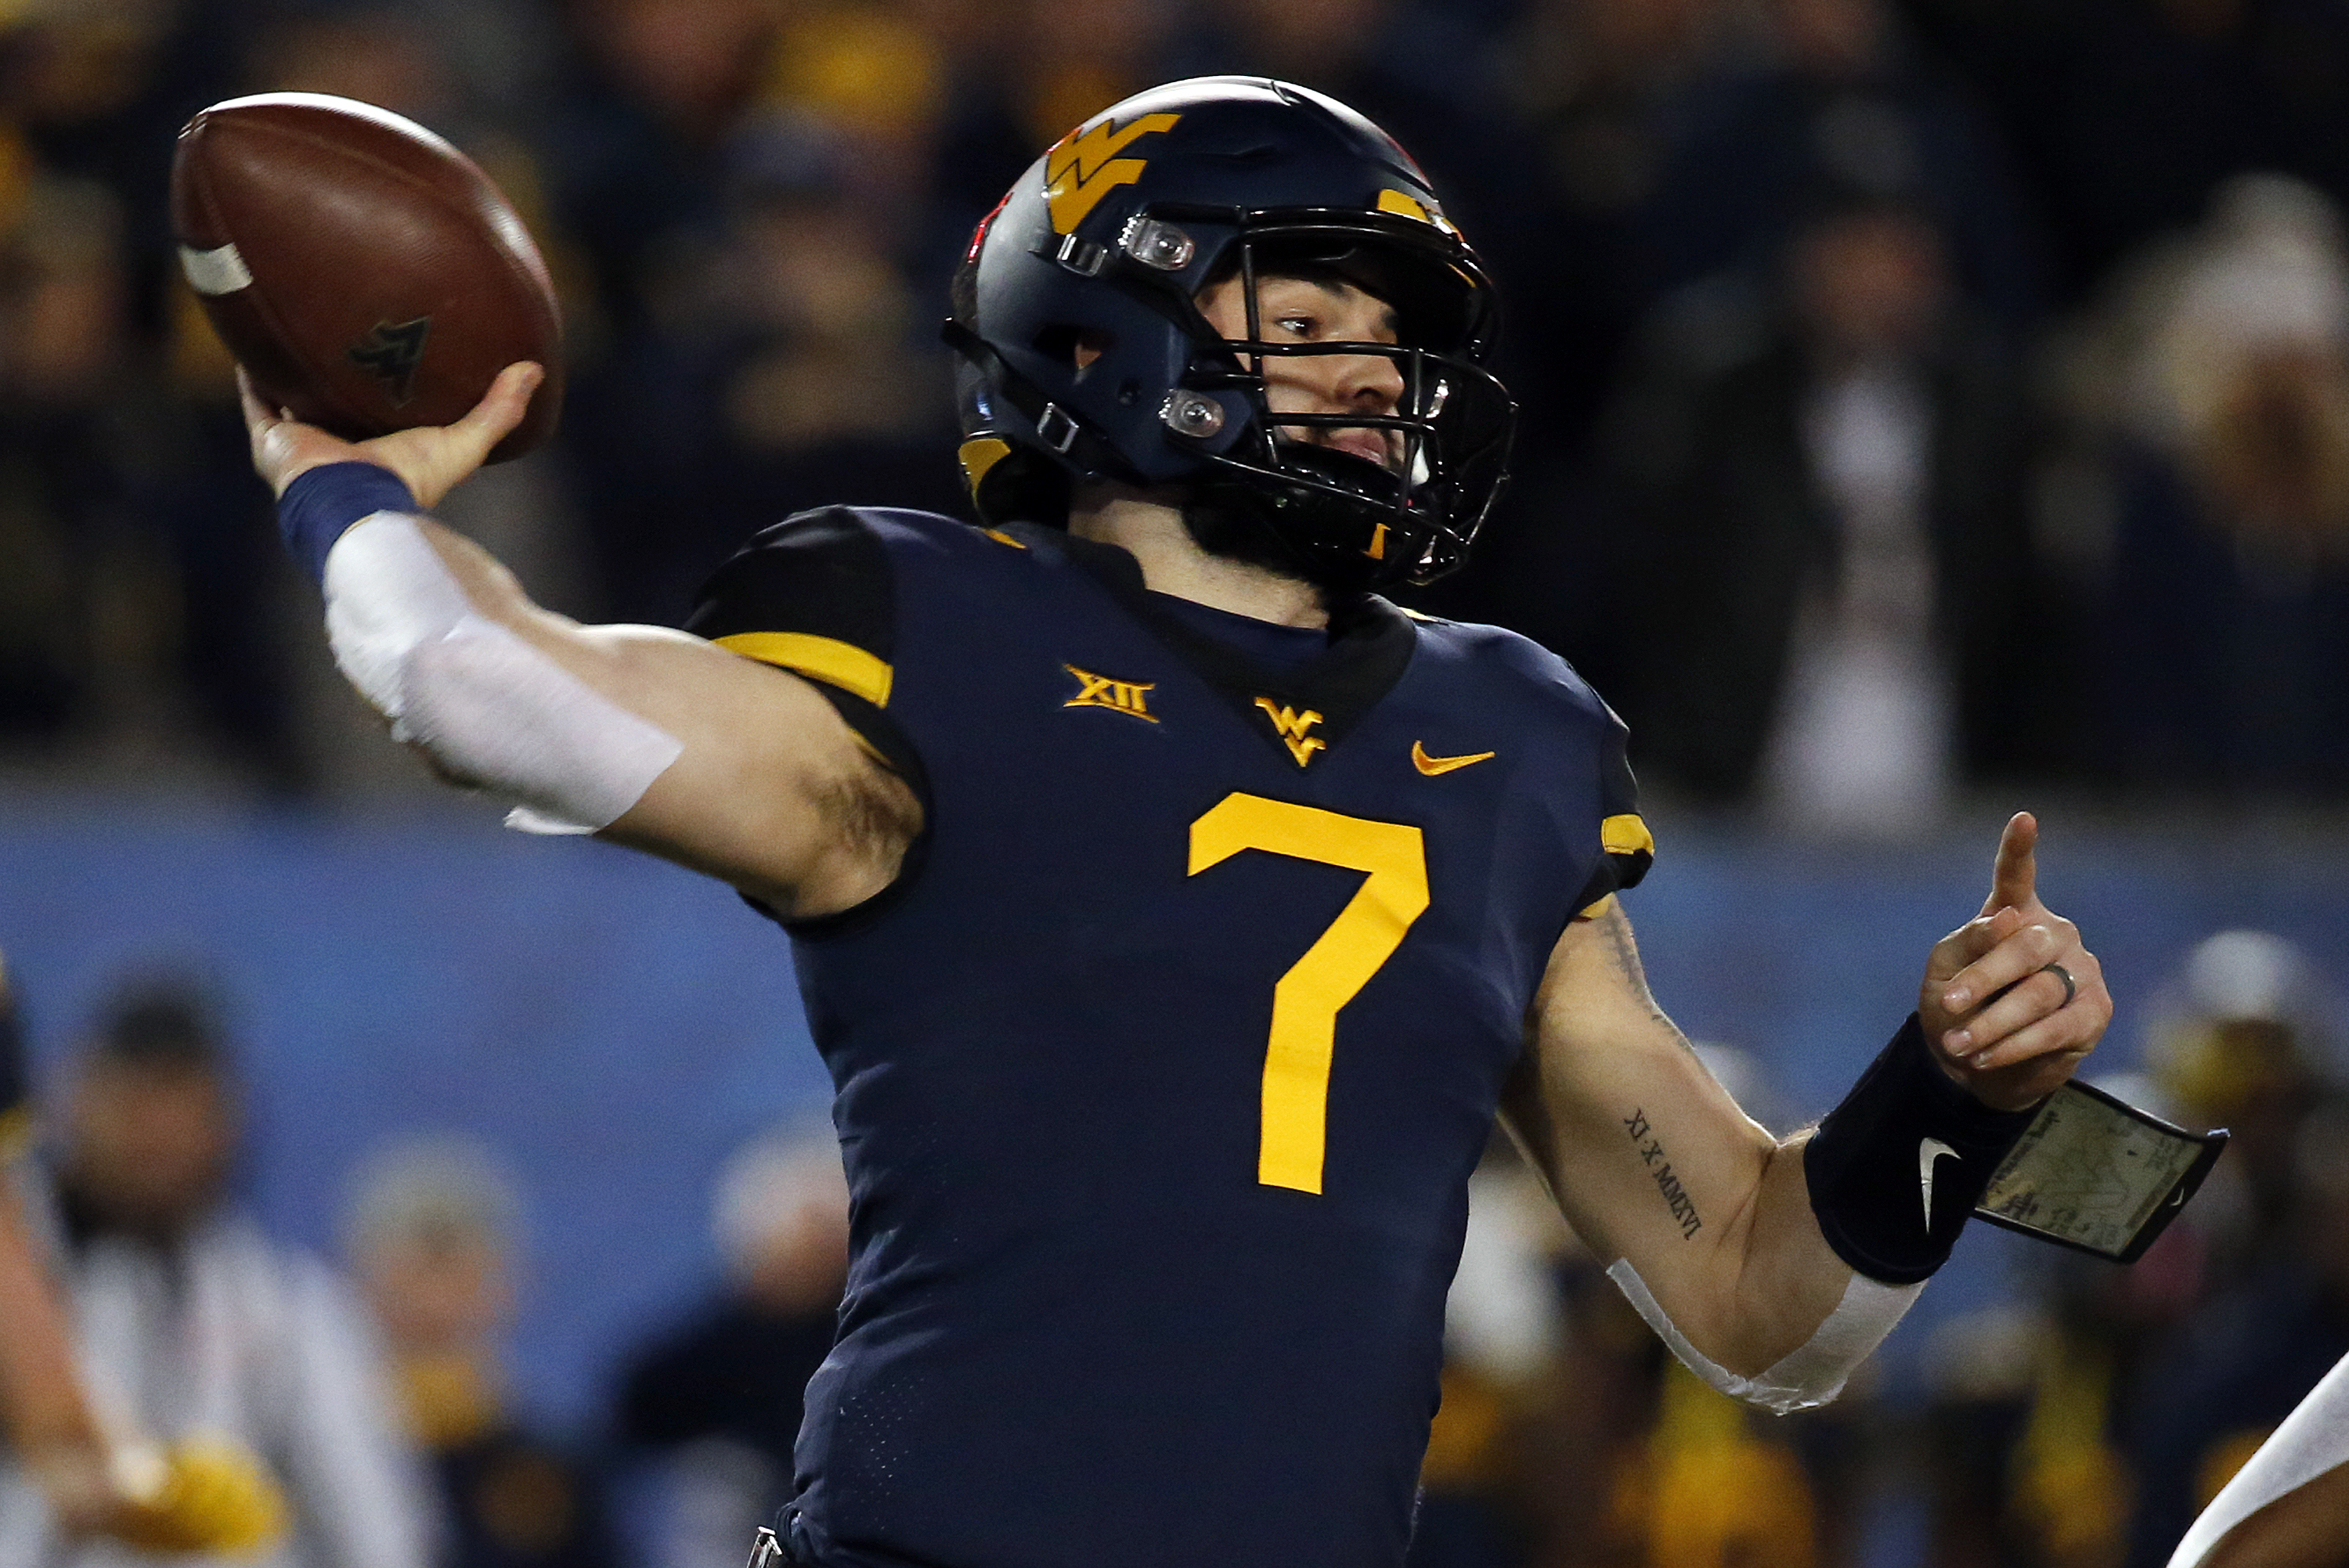 finest selection 03bd5 d7aef WVU QB Will Grier to Skip Camping World Bowl Game to Prepare ...